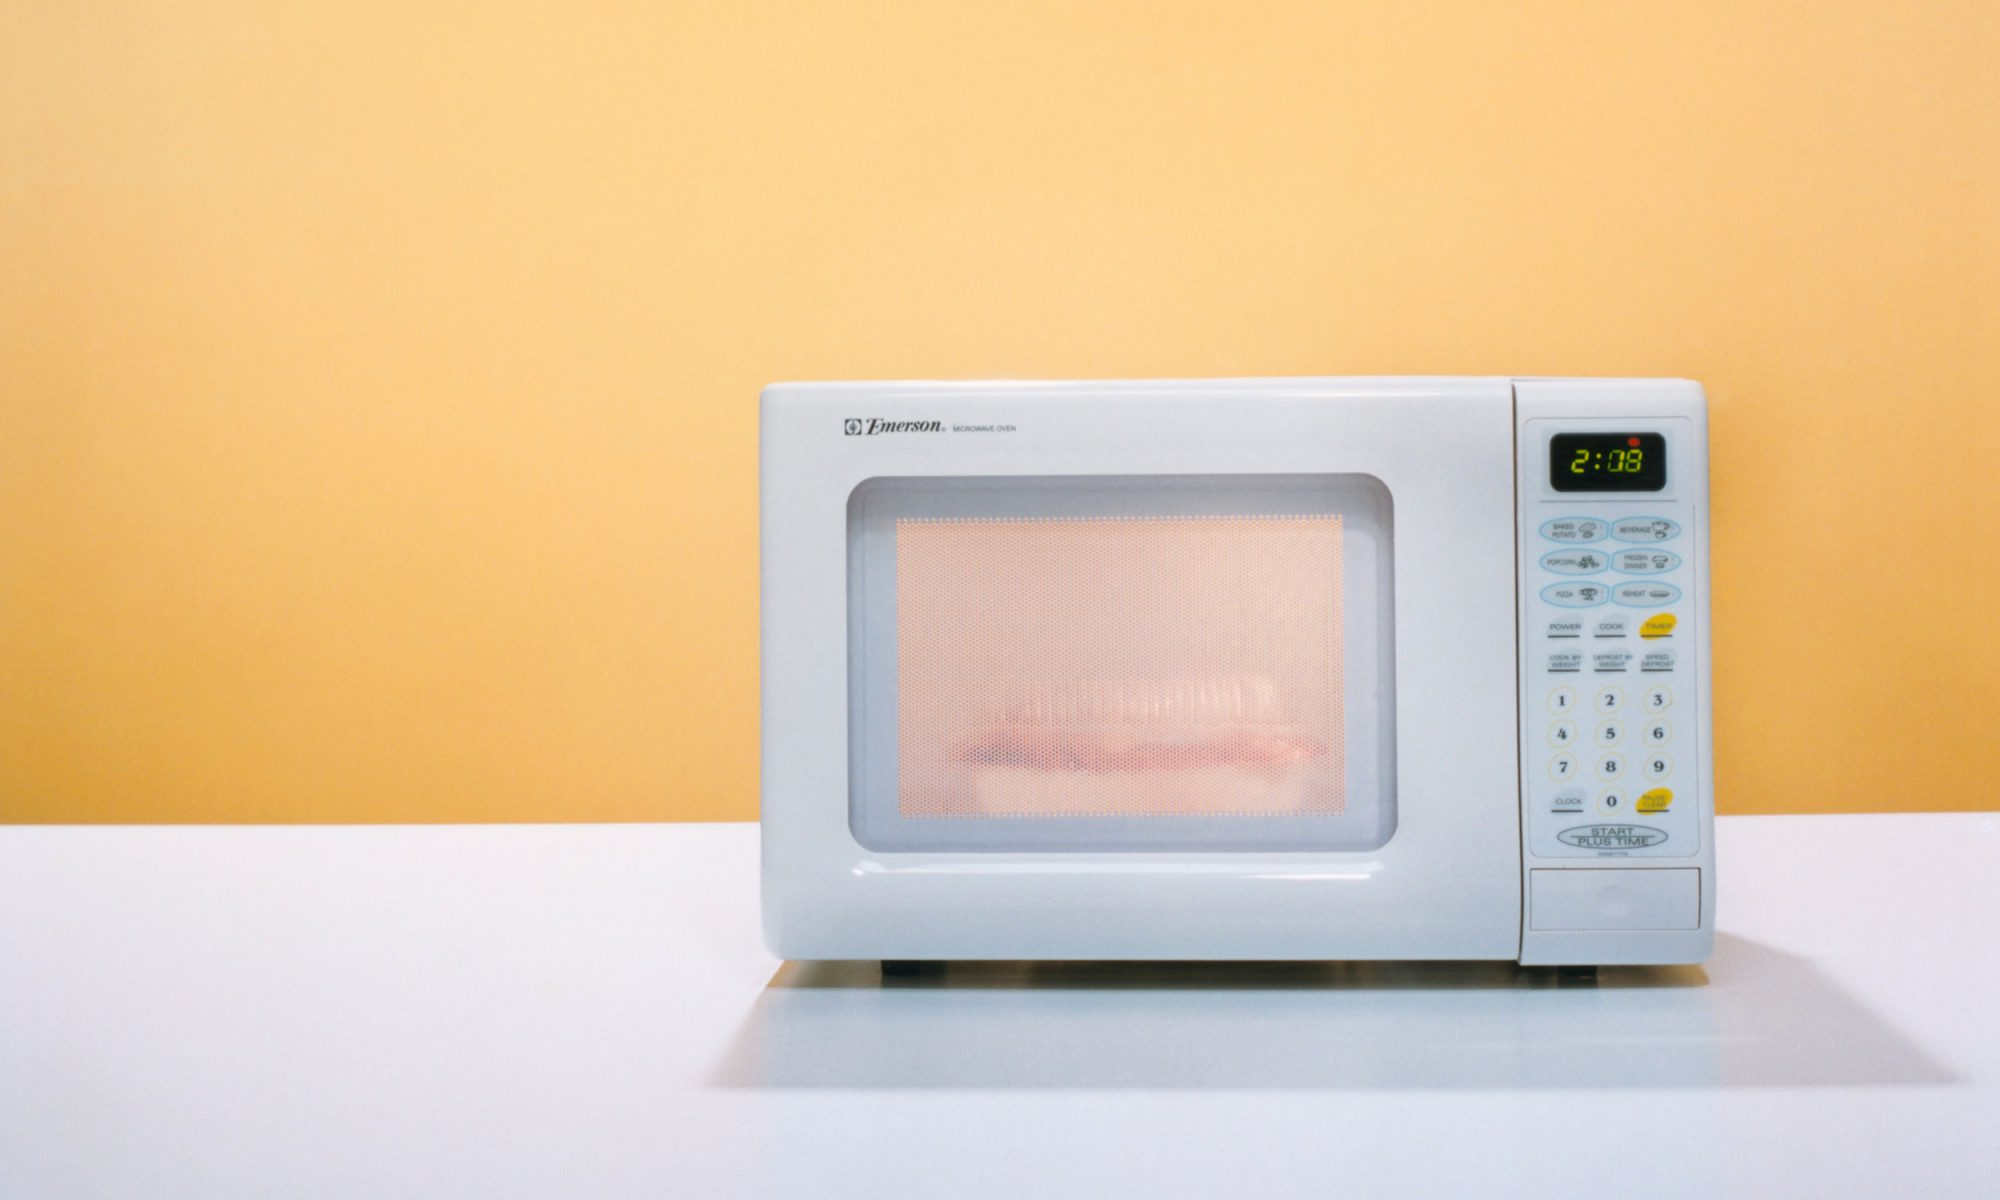 EC: The Smart Microwave That Wasn't